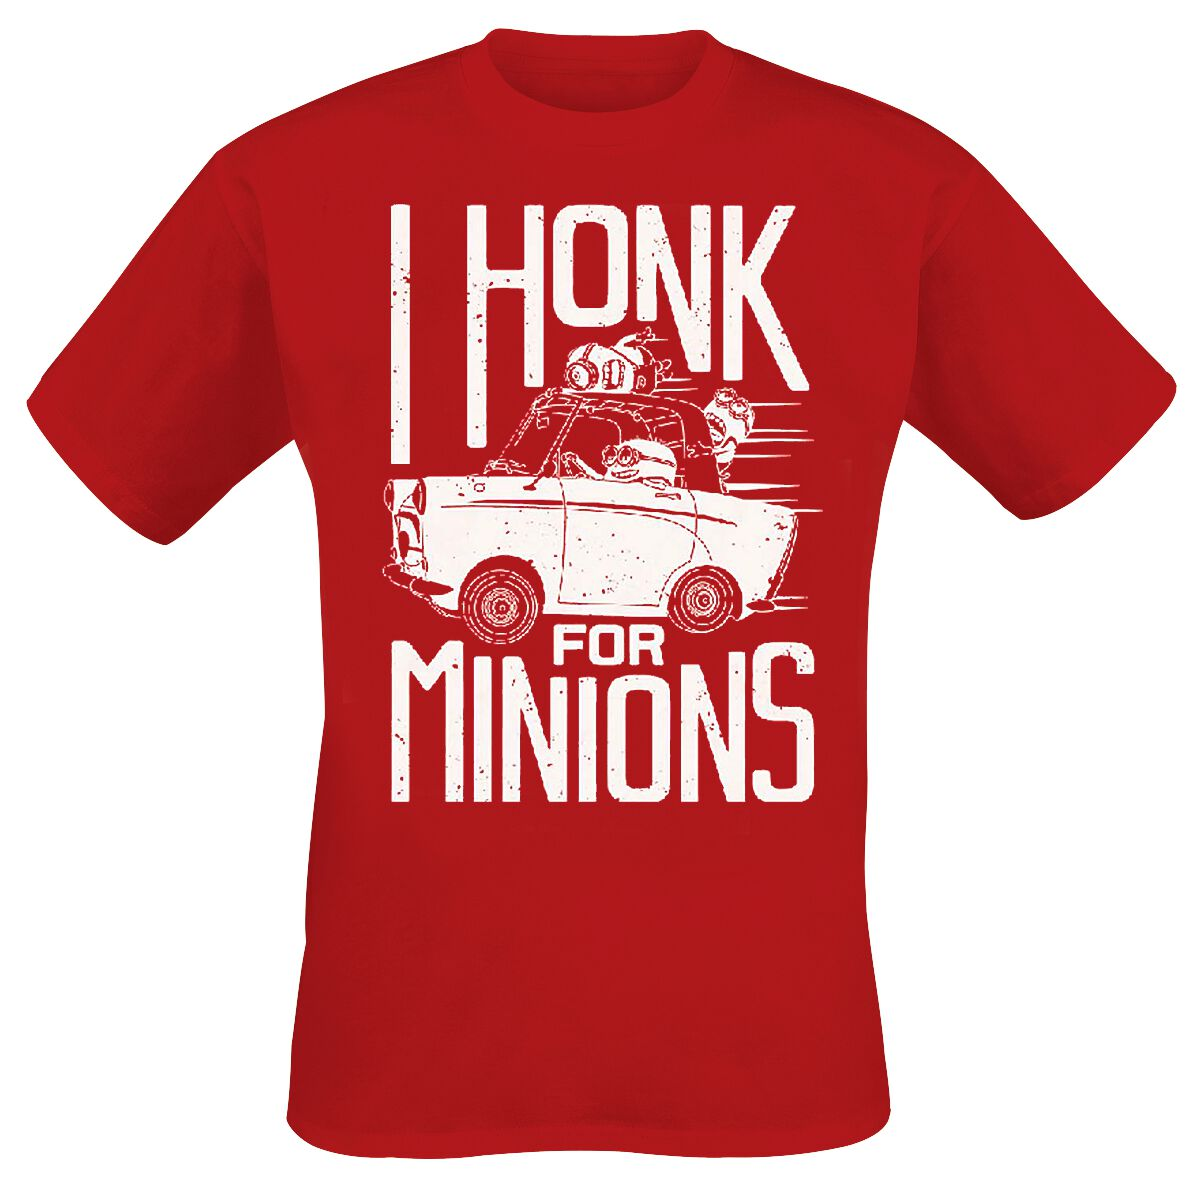 Minions I Honk For Minions T-Shirt rot Indie2627